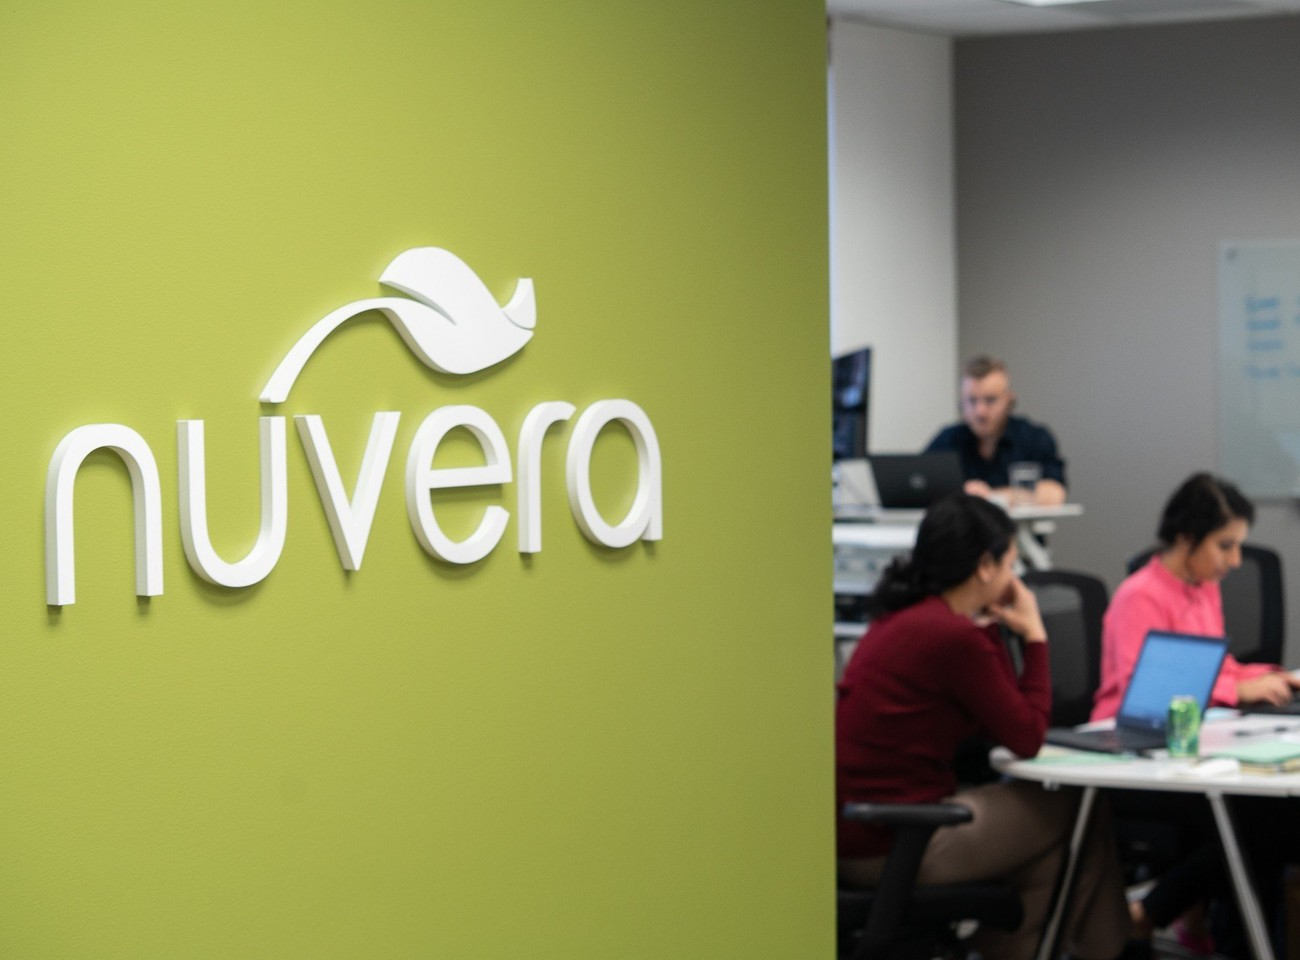 Nuvera Life Science Consulting Careers